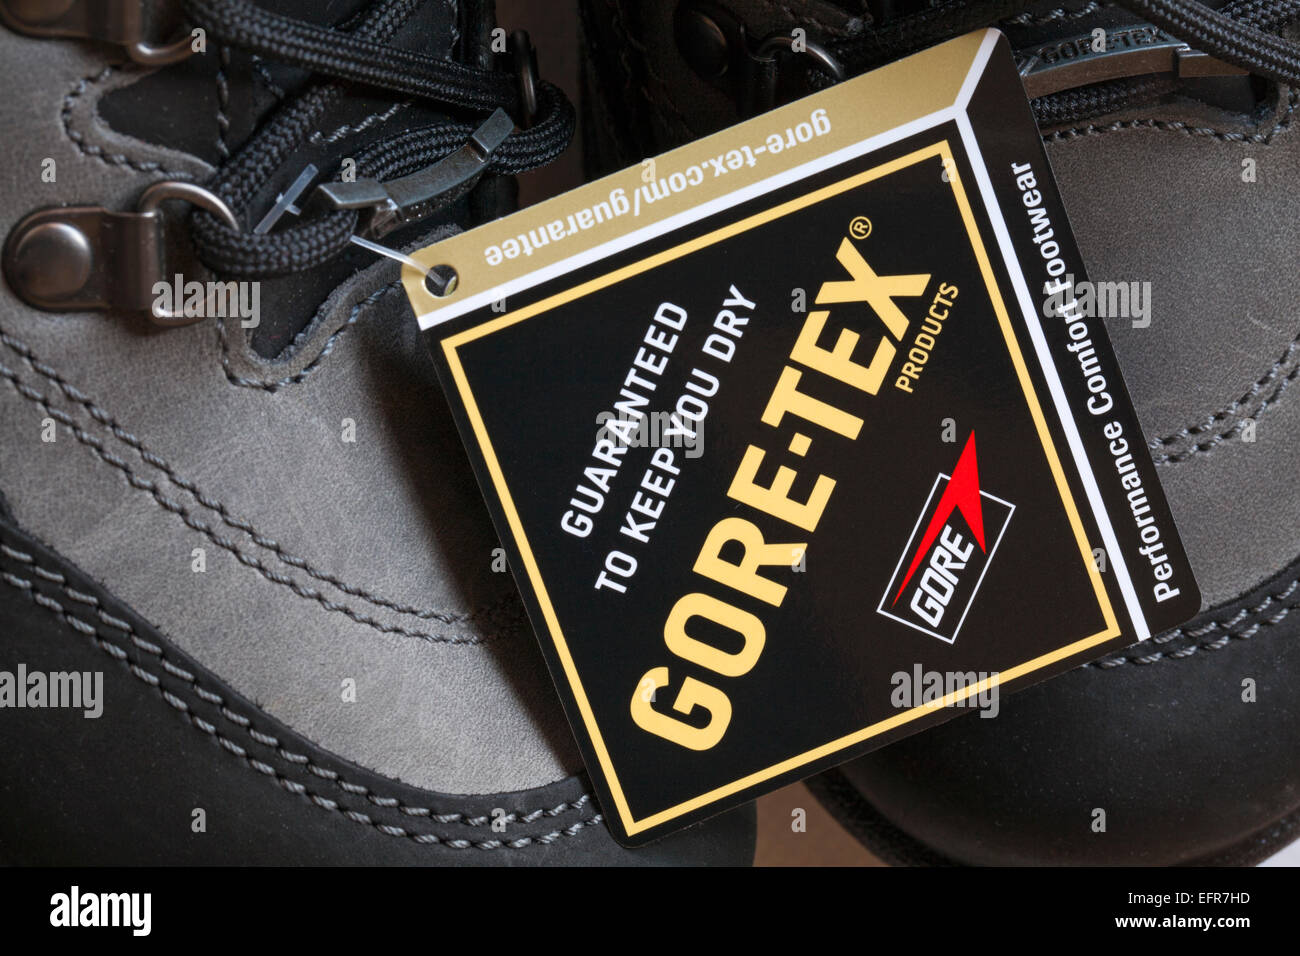 f5f497915f4 Guaranteed to keep you dry label on Hotter Gore-tex boots Stock ...